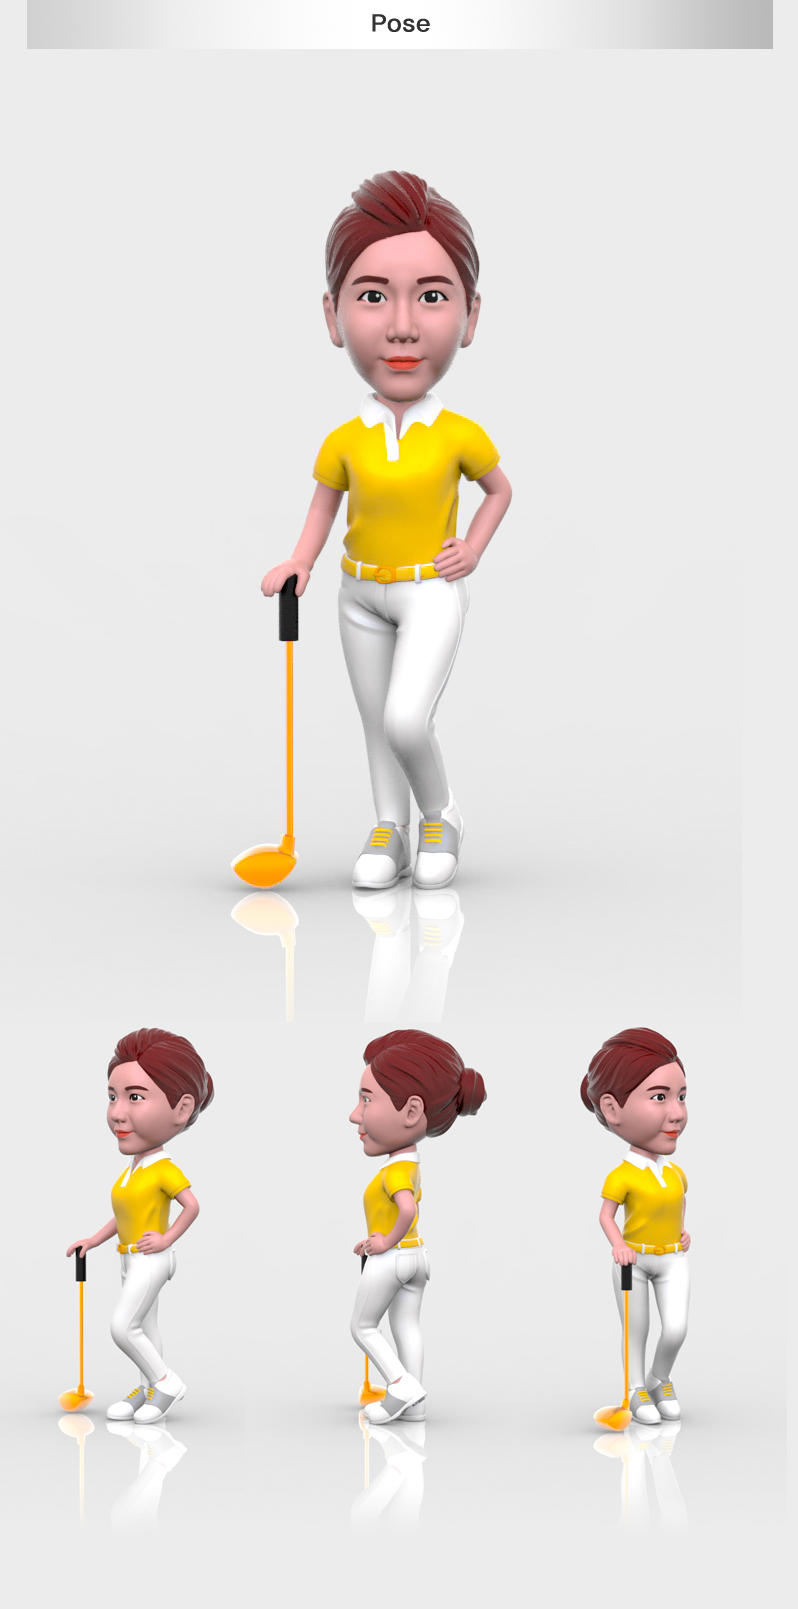 golf_w_pants_pose01